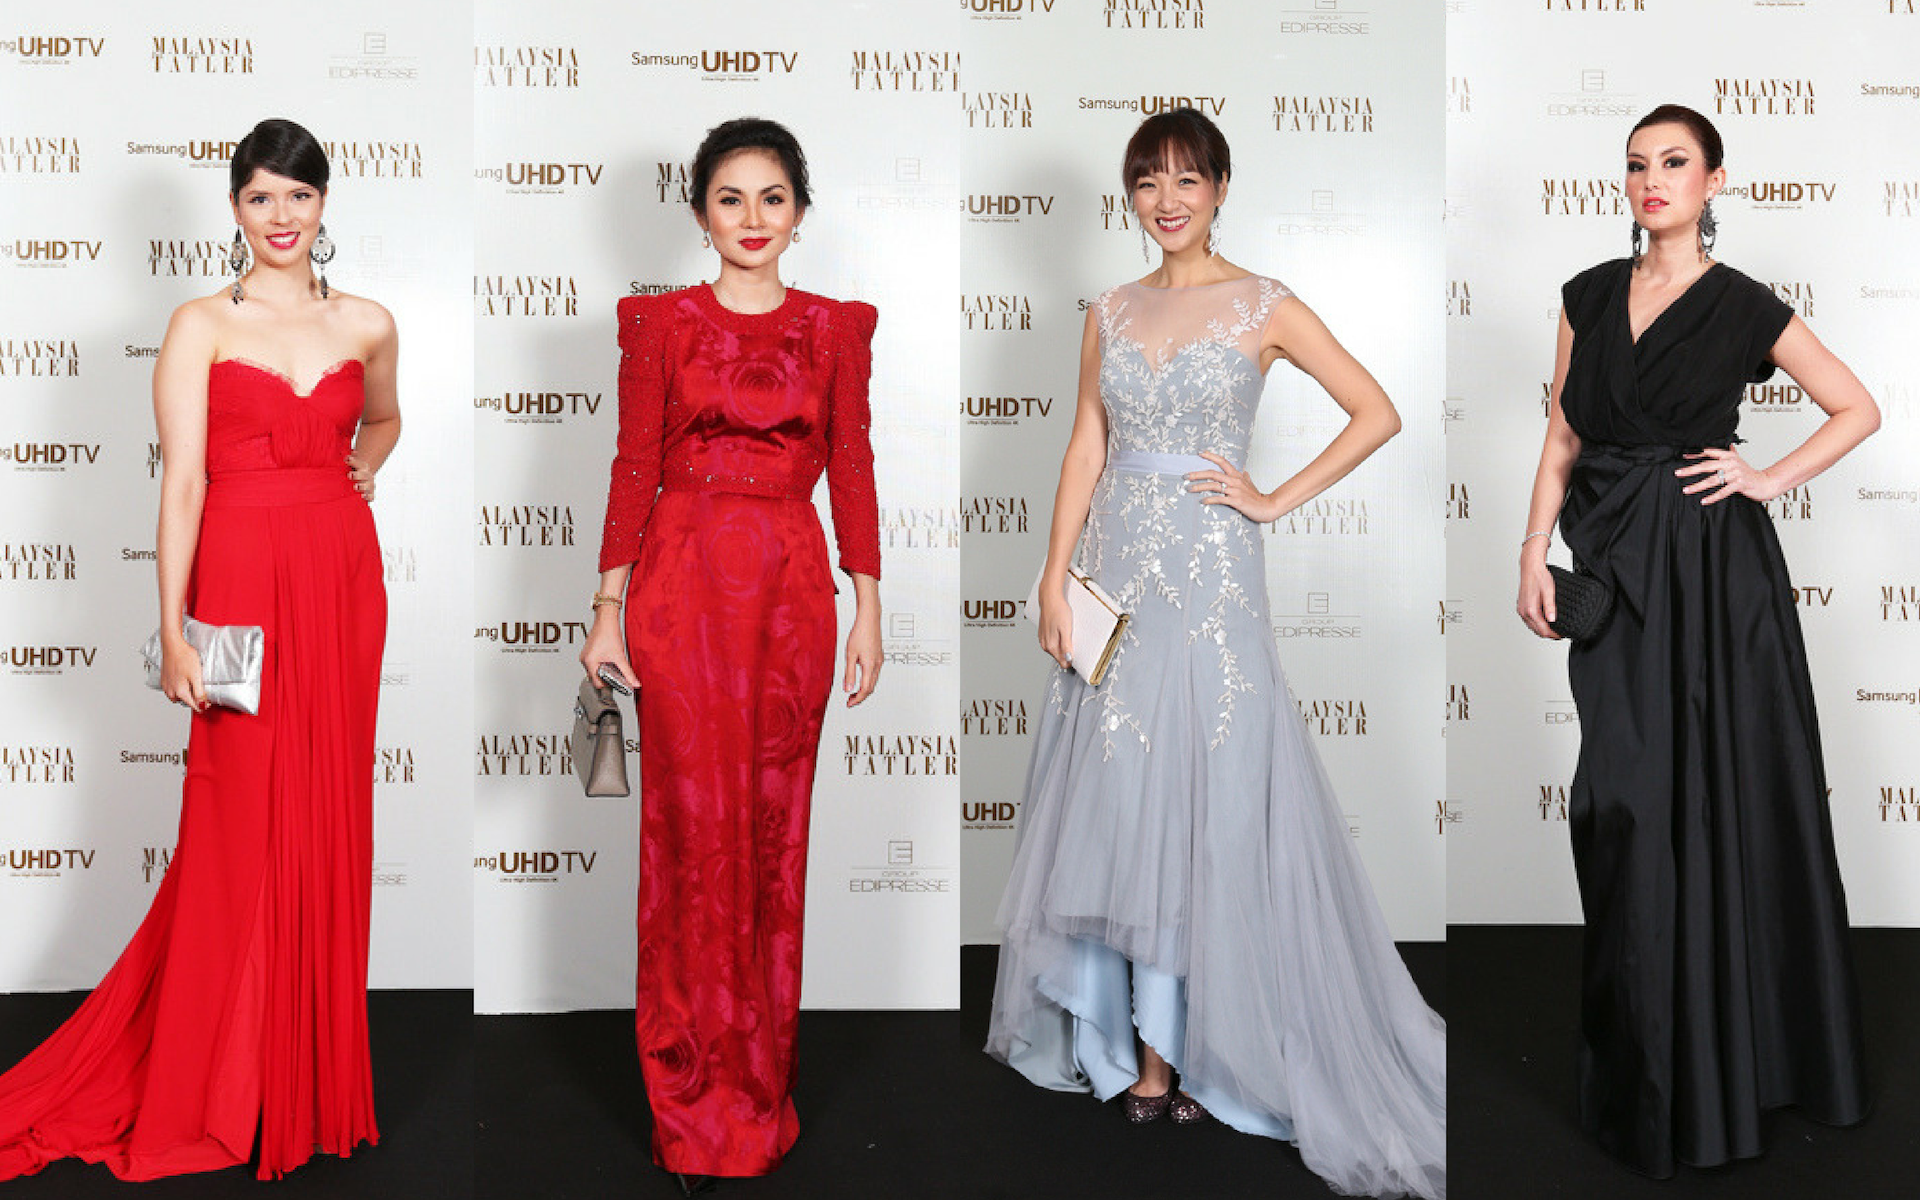 Yong Mei Ling in Jonathan Cheng, Datin Esmila Saruji in Innai Red, Gabrielle Tan-Helfman in Celest Thoi and Danielle Graham in Khoon Hooi